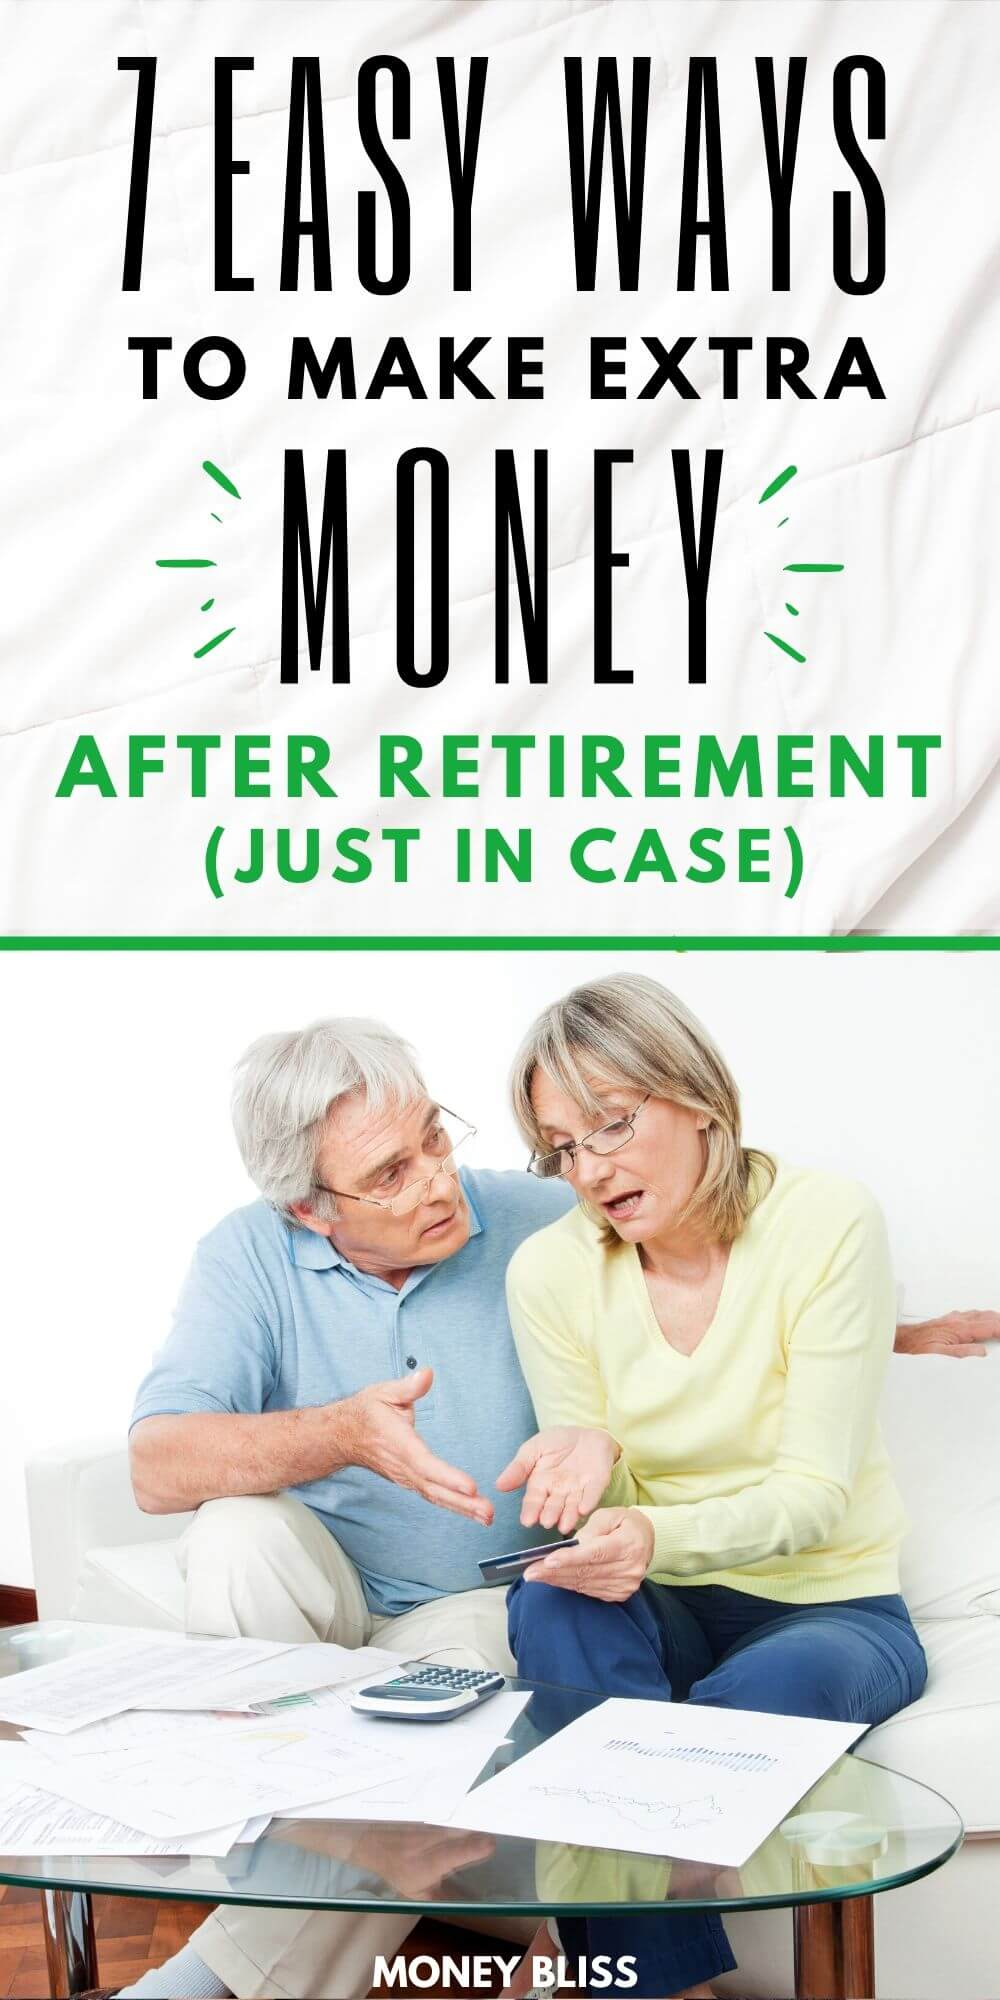 How can I earn money after retirement? This post will show you the best ways to make money in retirement. Plenty of your retirement hobbies that make money. You money management in the past won't hold you back.